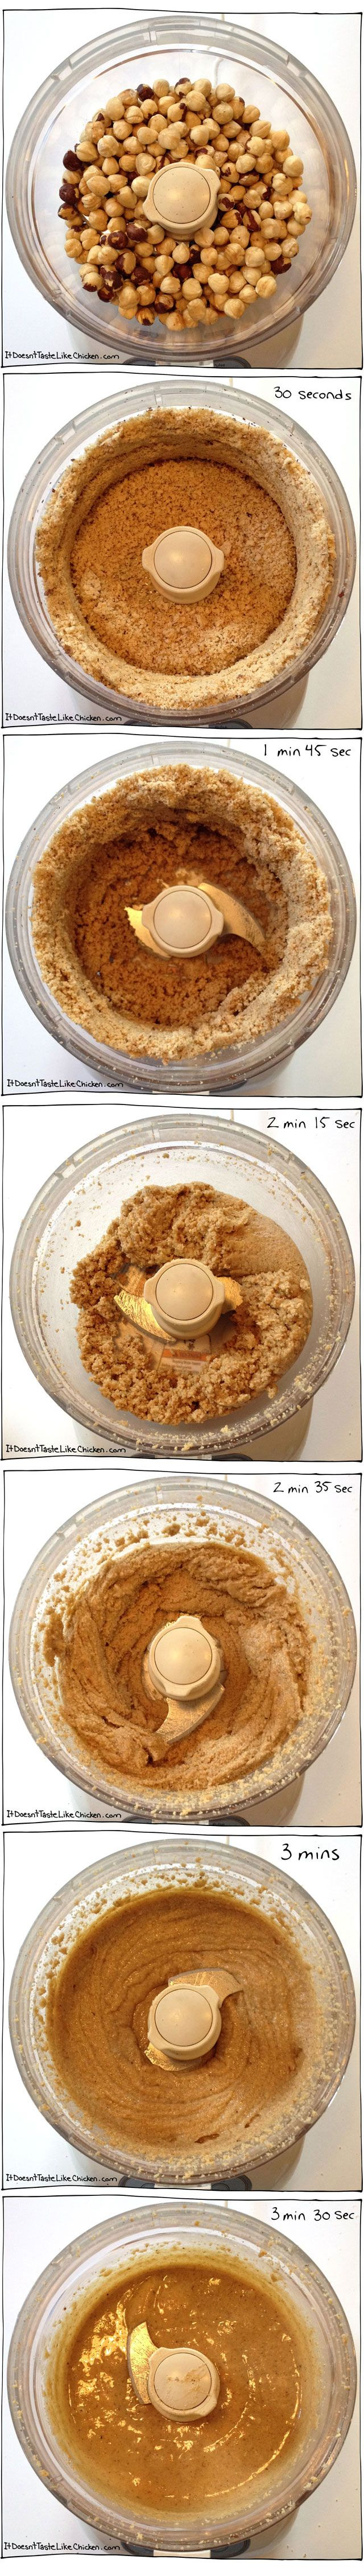 Homemade Hazelnut Butter! Just hazelnuts and a food processor to get this delicious treat! #itdoesnttastelikechicken